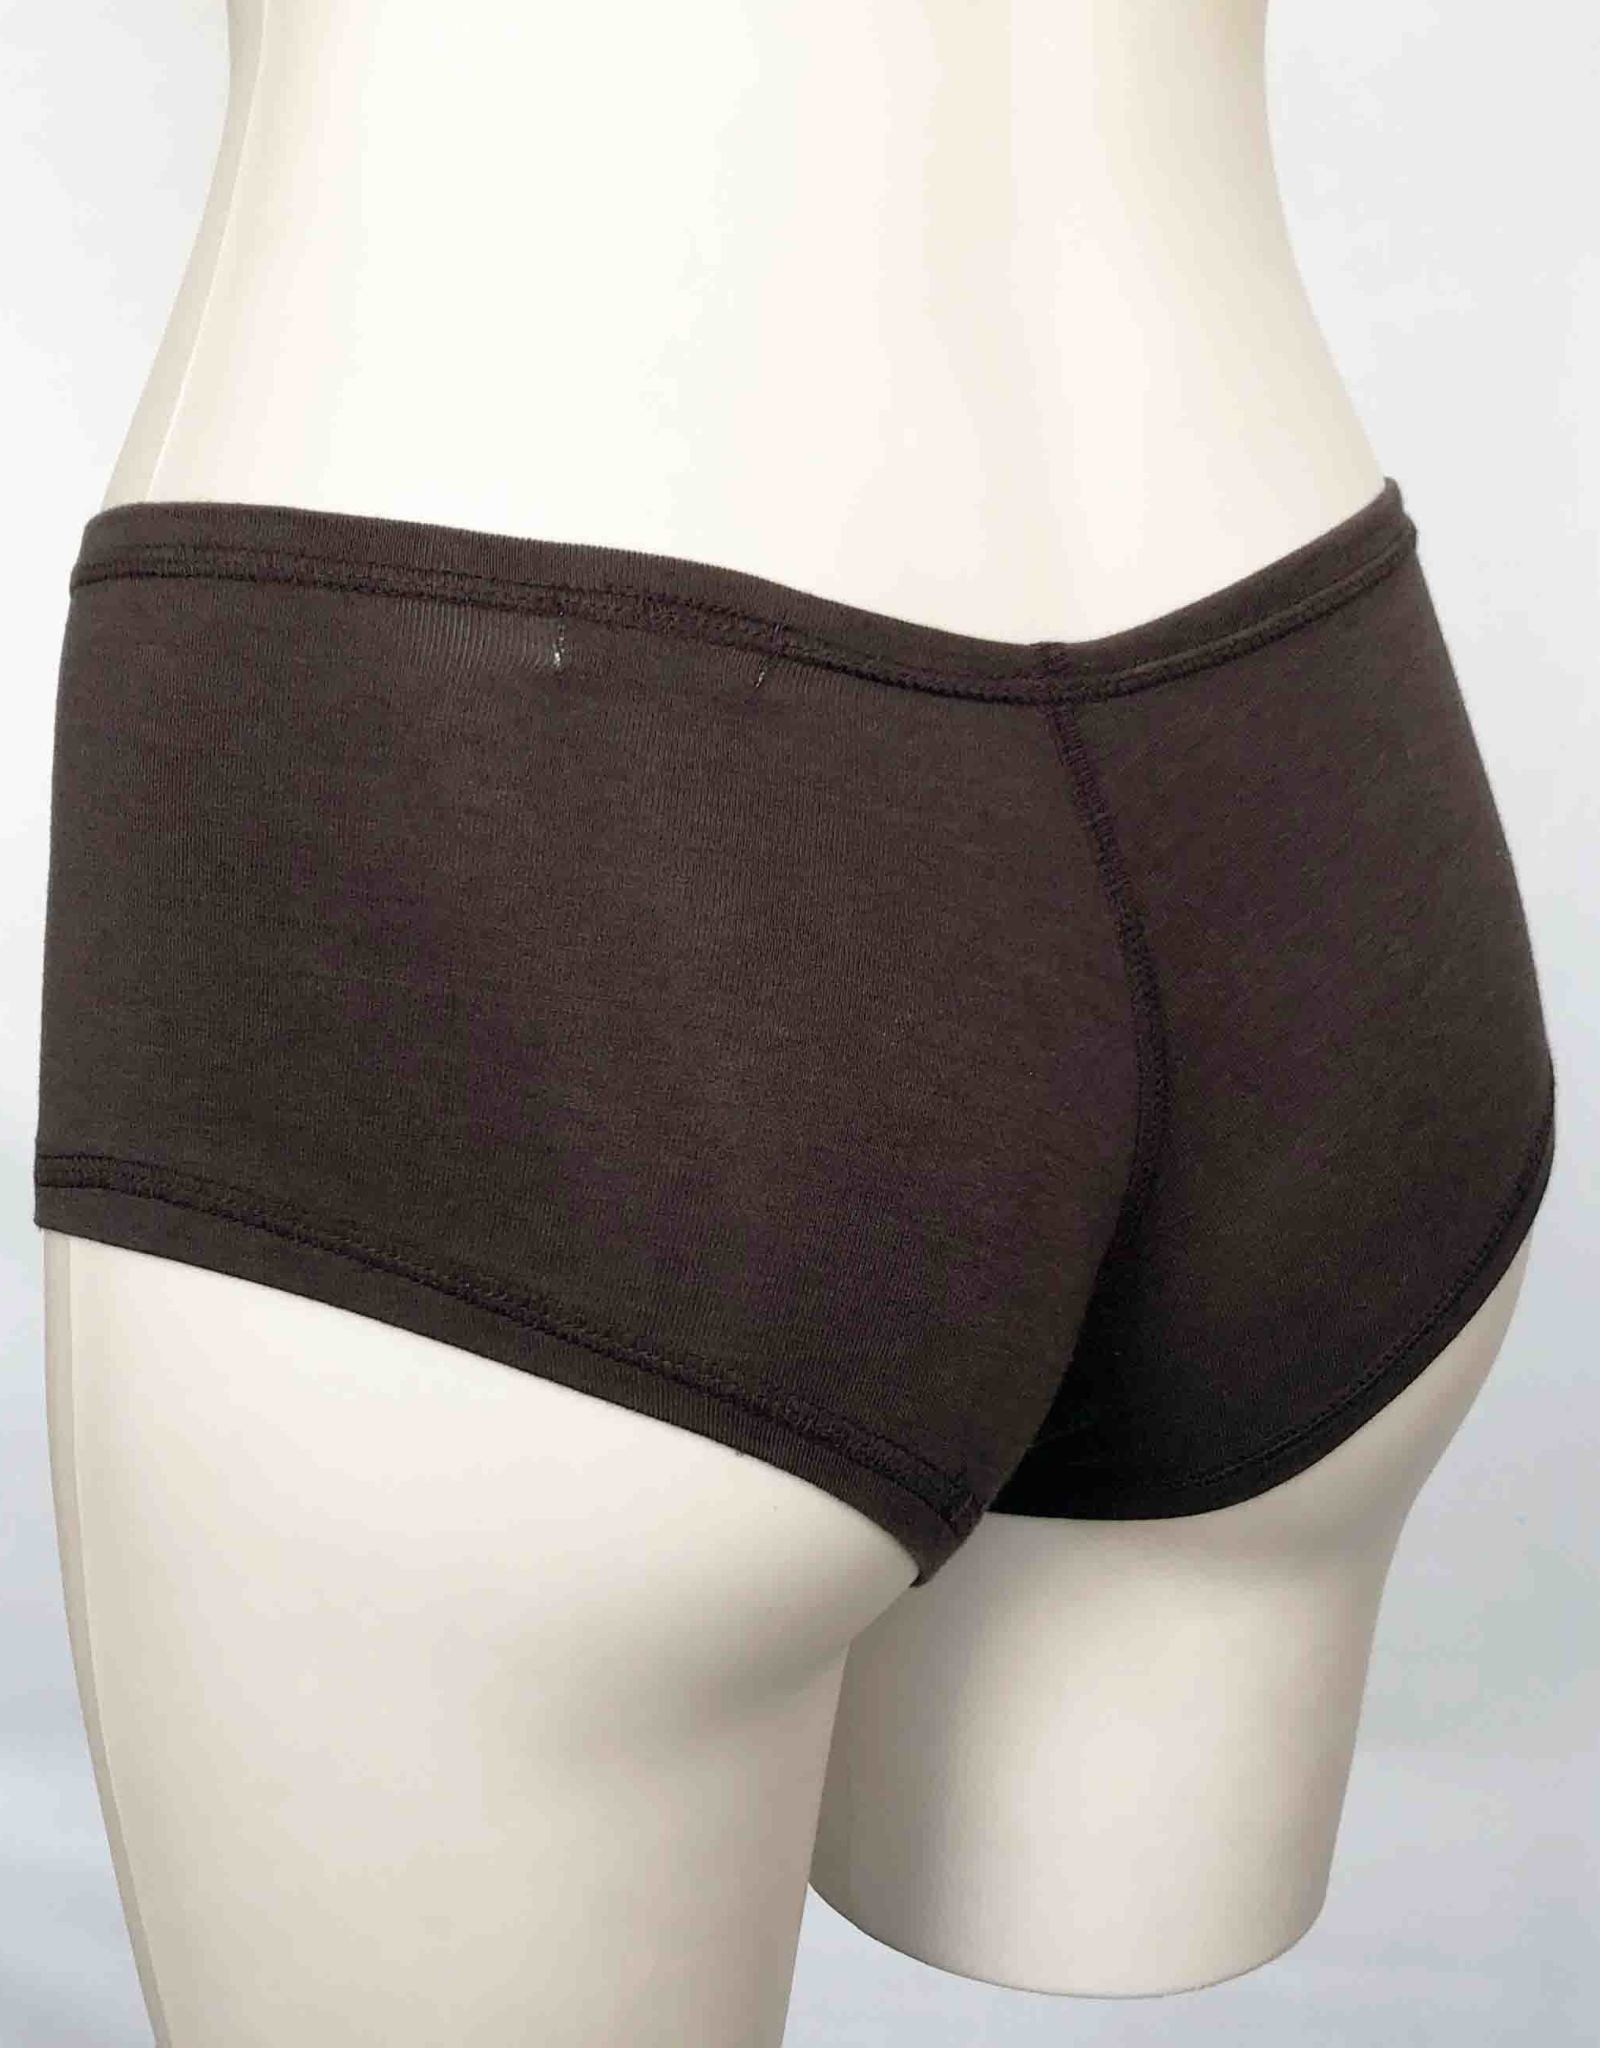 Devil May Wear Hot Shorts Bamboo Blend Underwear. Chocolate Brown